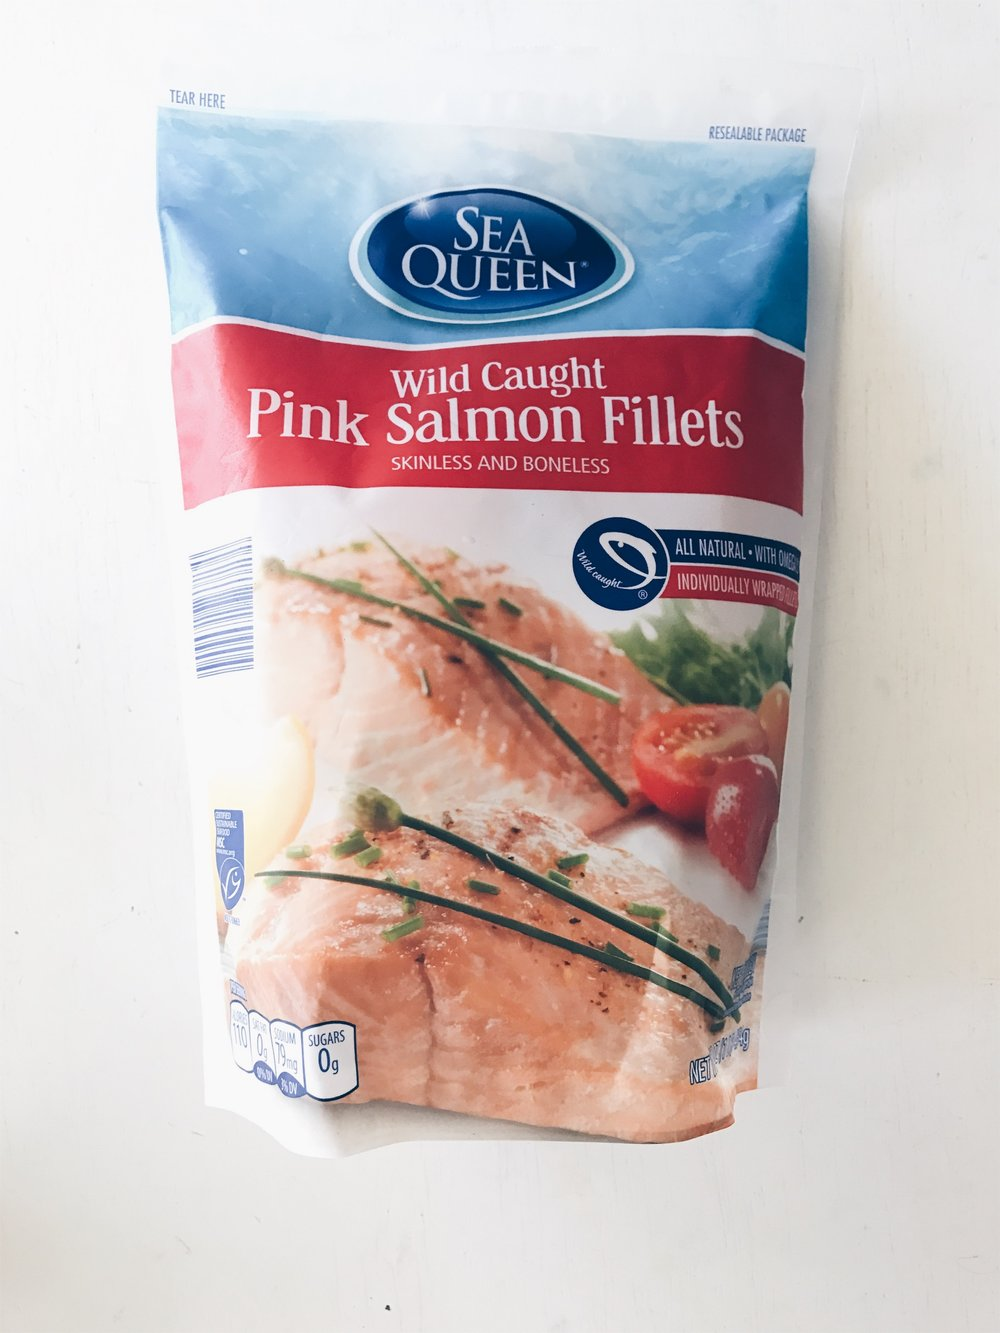 I love changing up our meals with a little fish. ALDI has a lot more than you would think; shrimp, tilapia, and salmon When purchasing salmon or any fish make sure to look for wild-caught and not farm raised. In this pack all the fillets are individually wrapped which keeps them fresher longer.